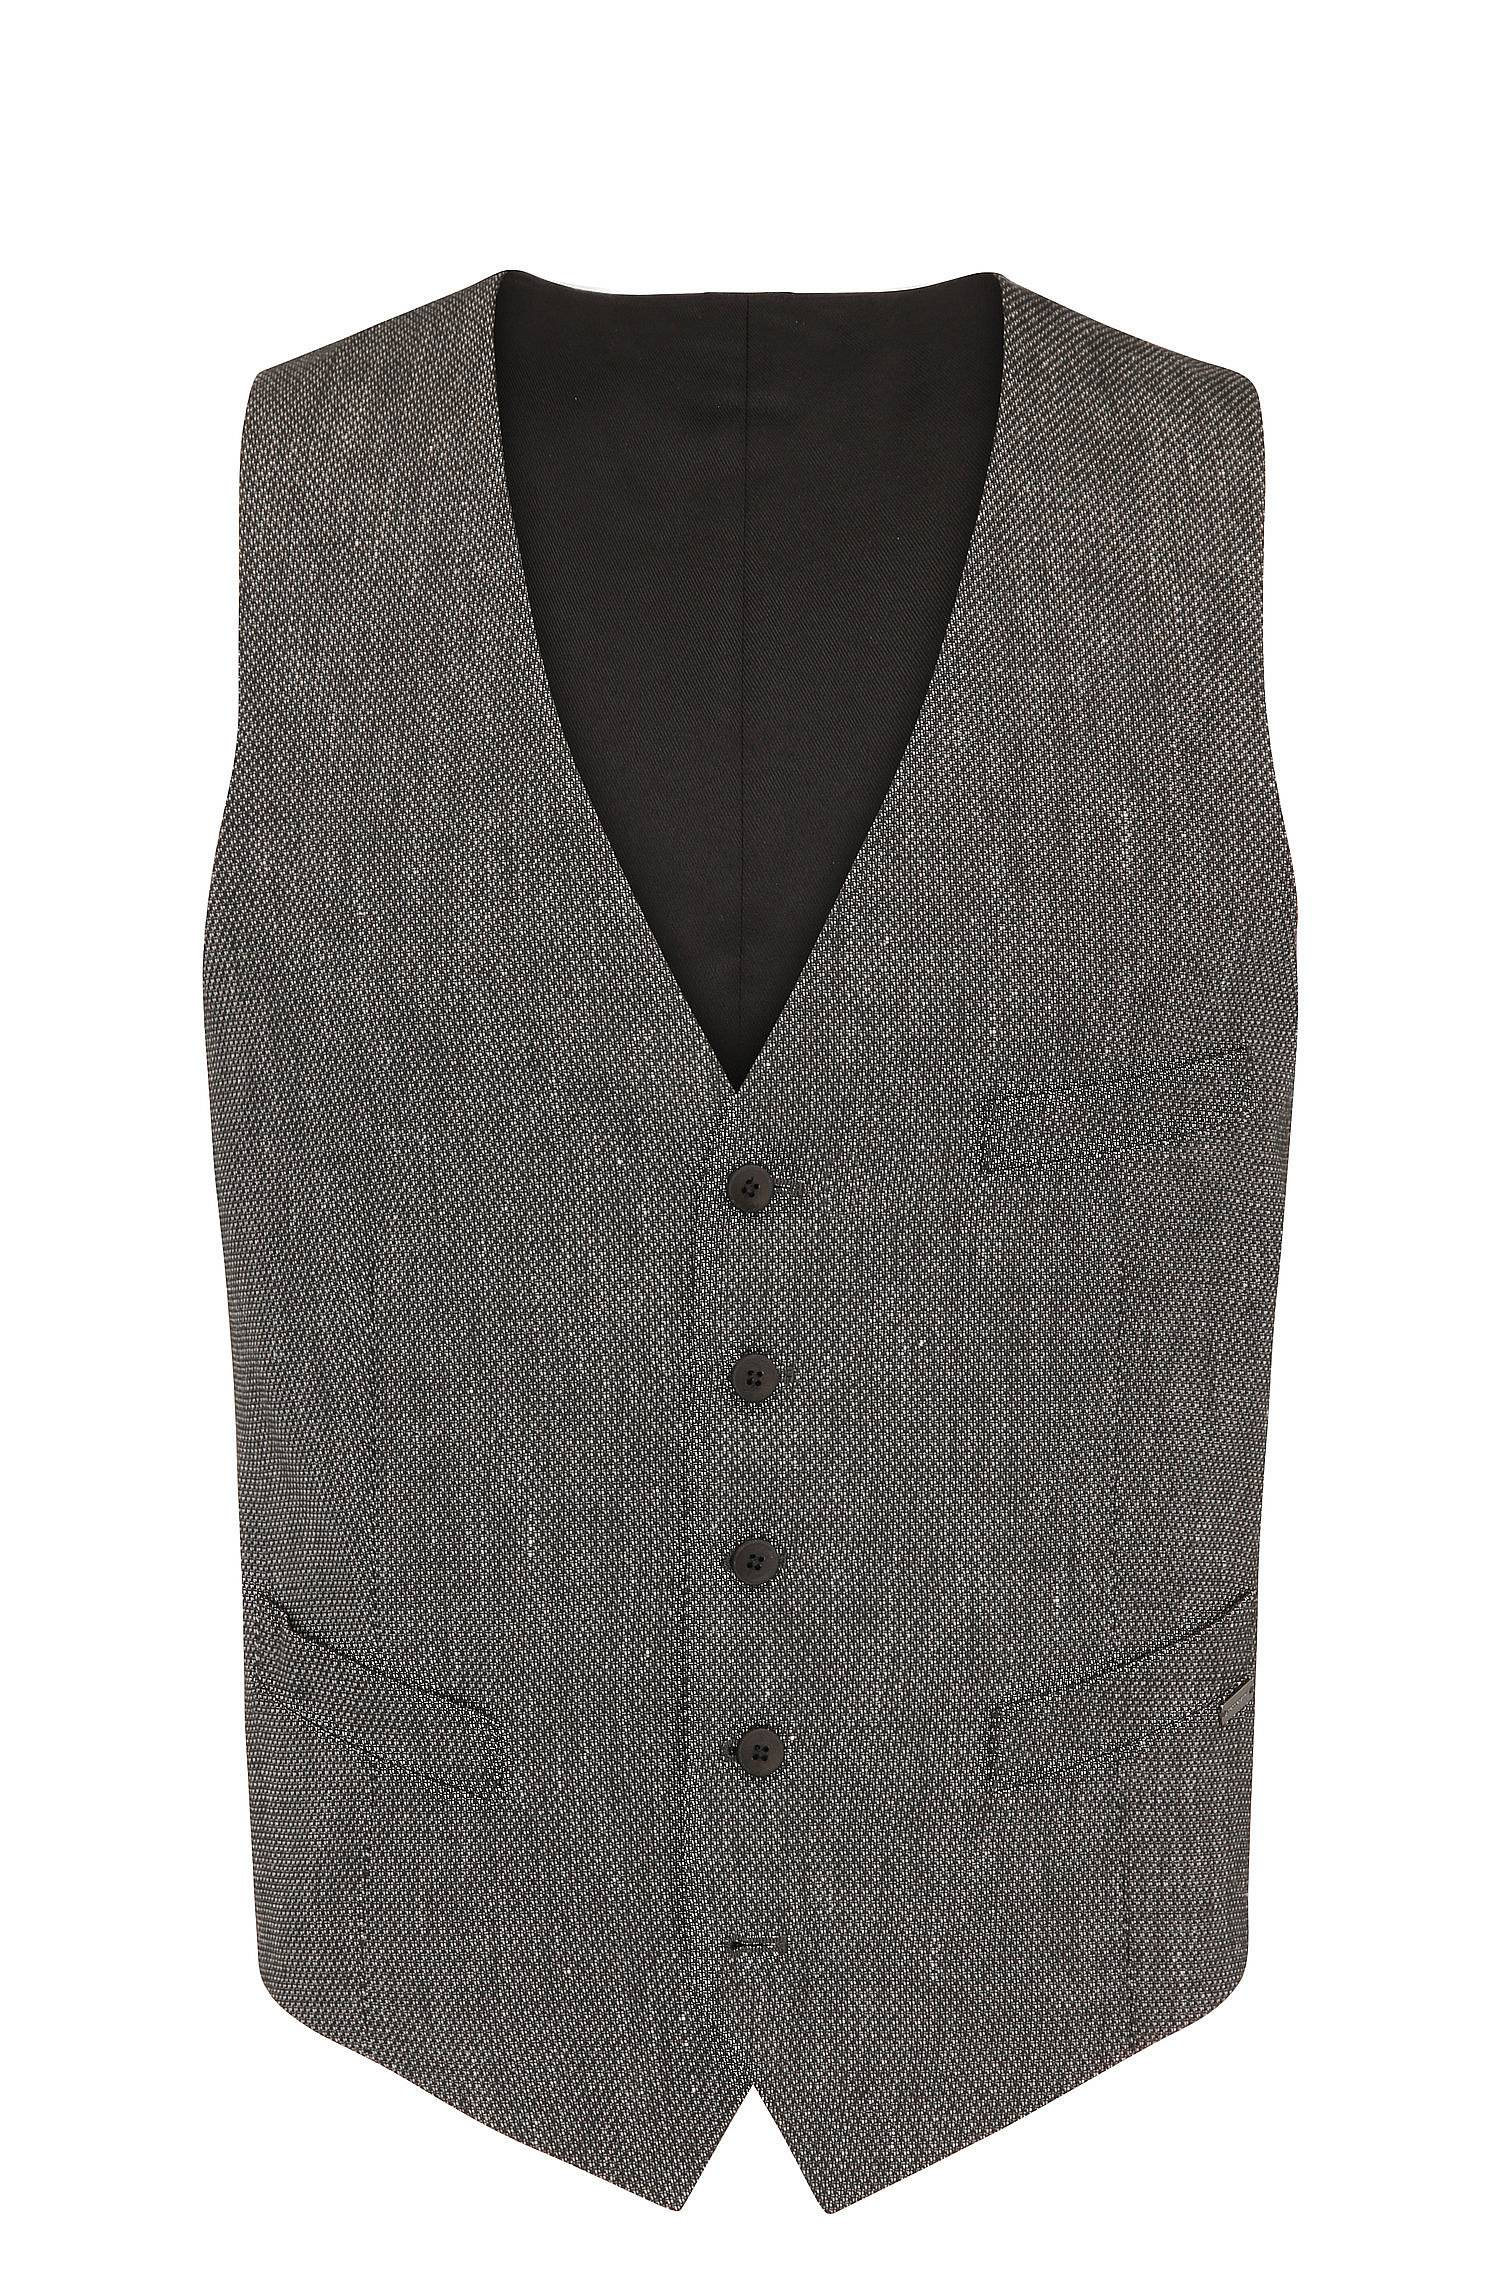 Slimfit waistcoat in a textured material blend with linen and viscose `Bacer3_BS`